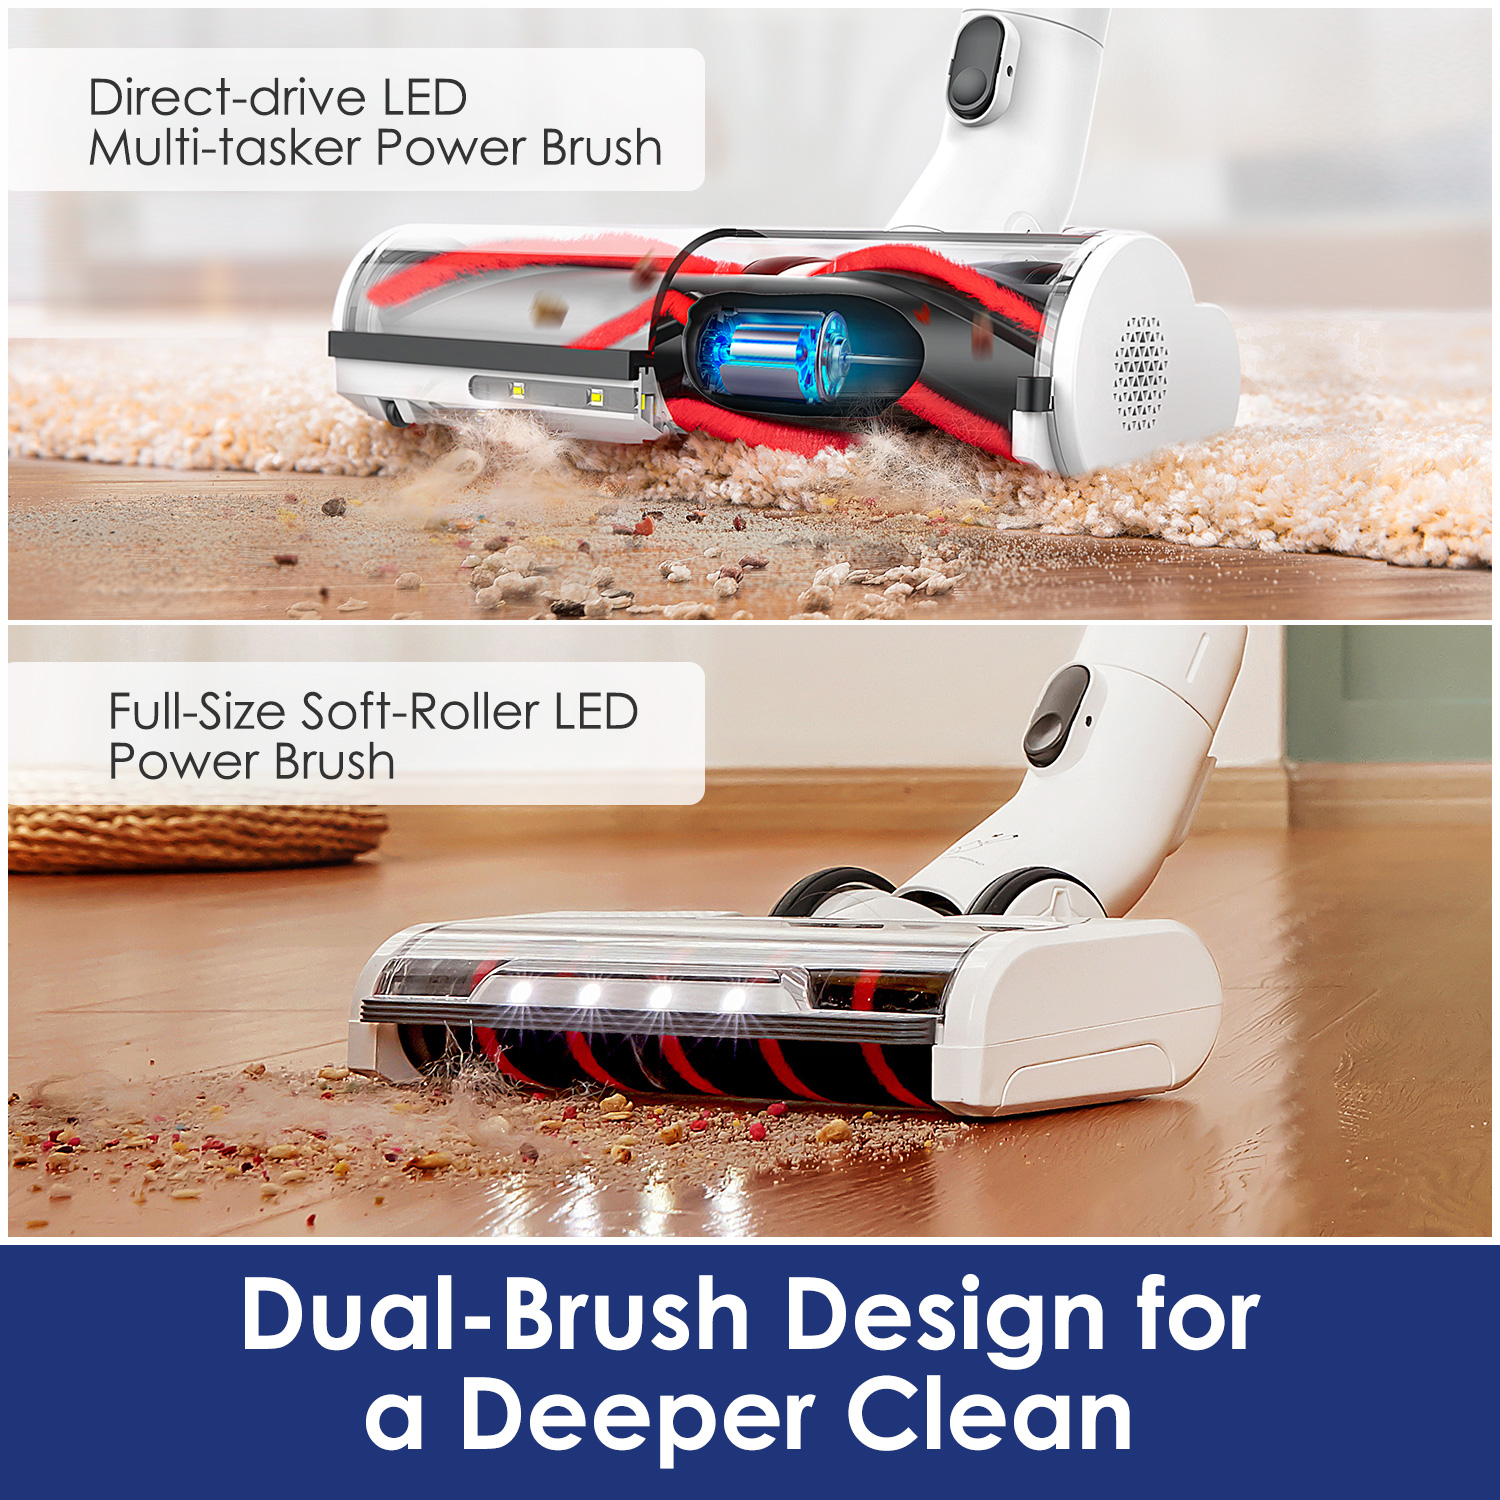 Tineco Pure One S12 Tango Cordless Smarter Easier Faster Better Cleaning Powerful Suction Max Power Boost